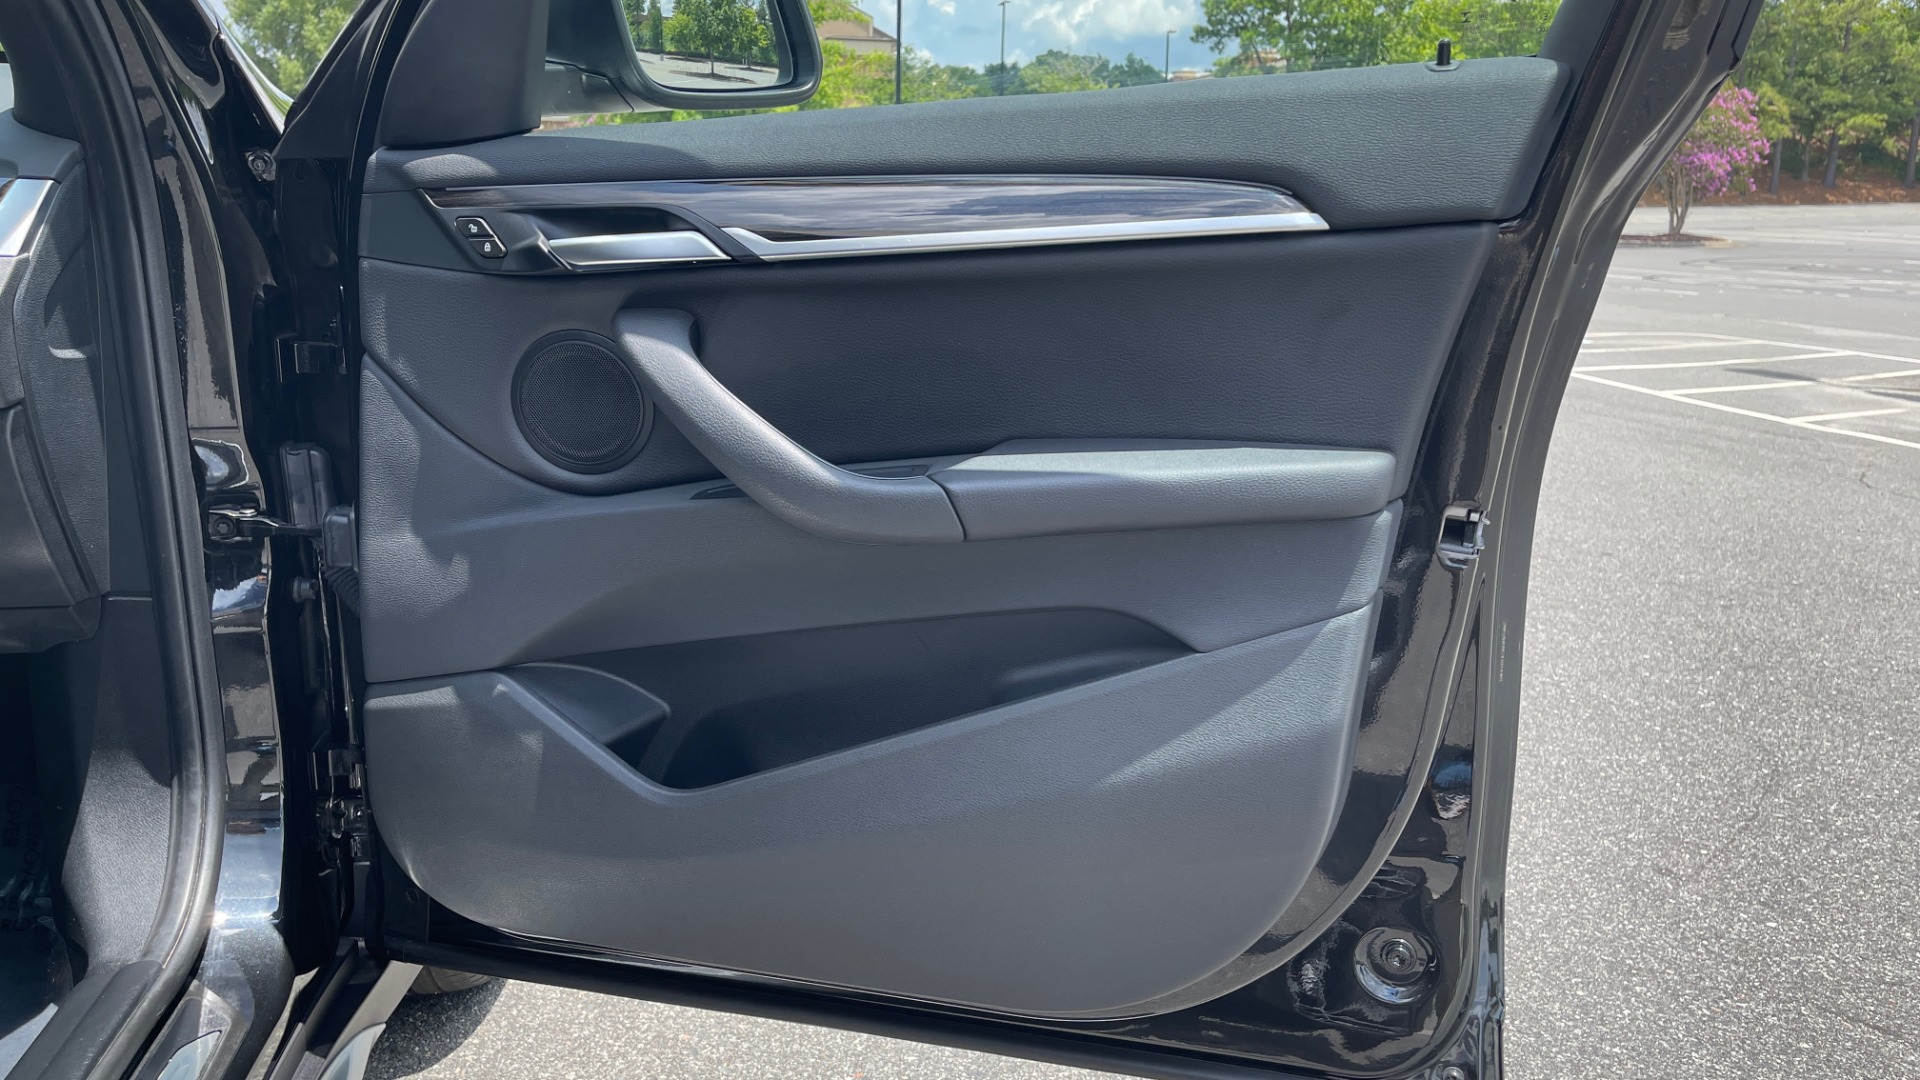 Used 2018 BMW X1 XDRIVE28I / NAV / CONV PKG / HTD STS / PANO-ROOF / REARVIEW for sale $29,995 at Formula Imports in Charlotte NC 28227 65